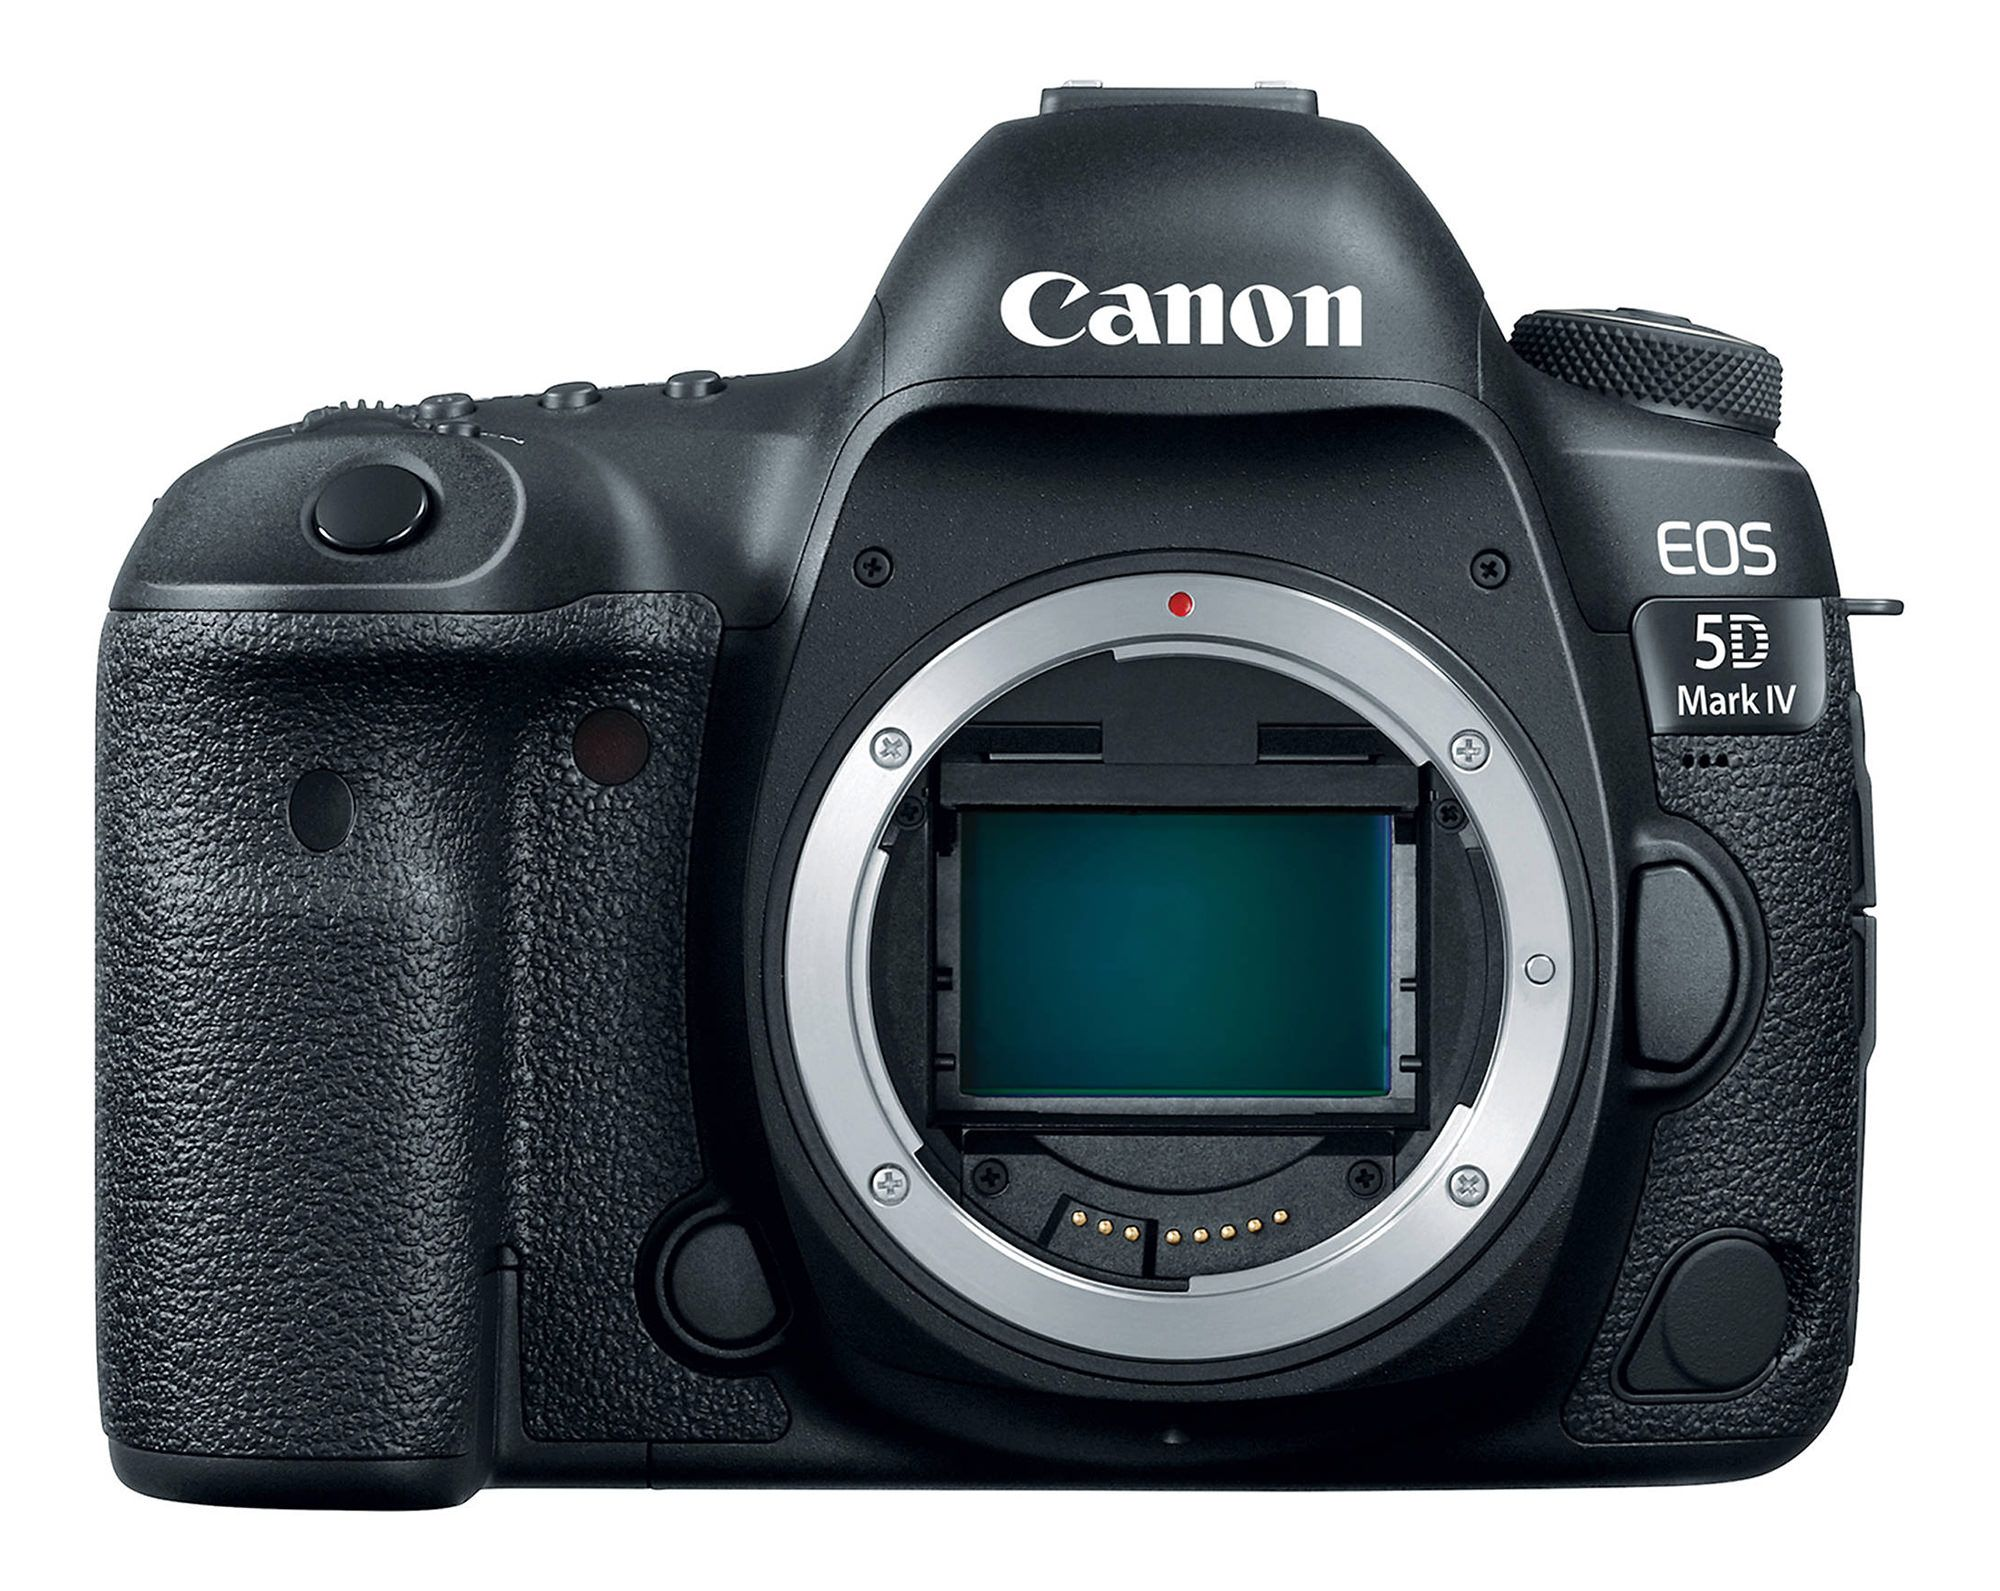 With the arrival of the much anticipated Canon 5D Mark IV many